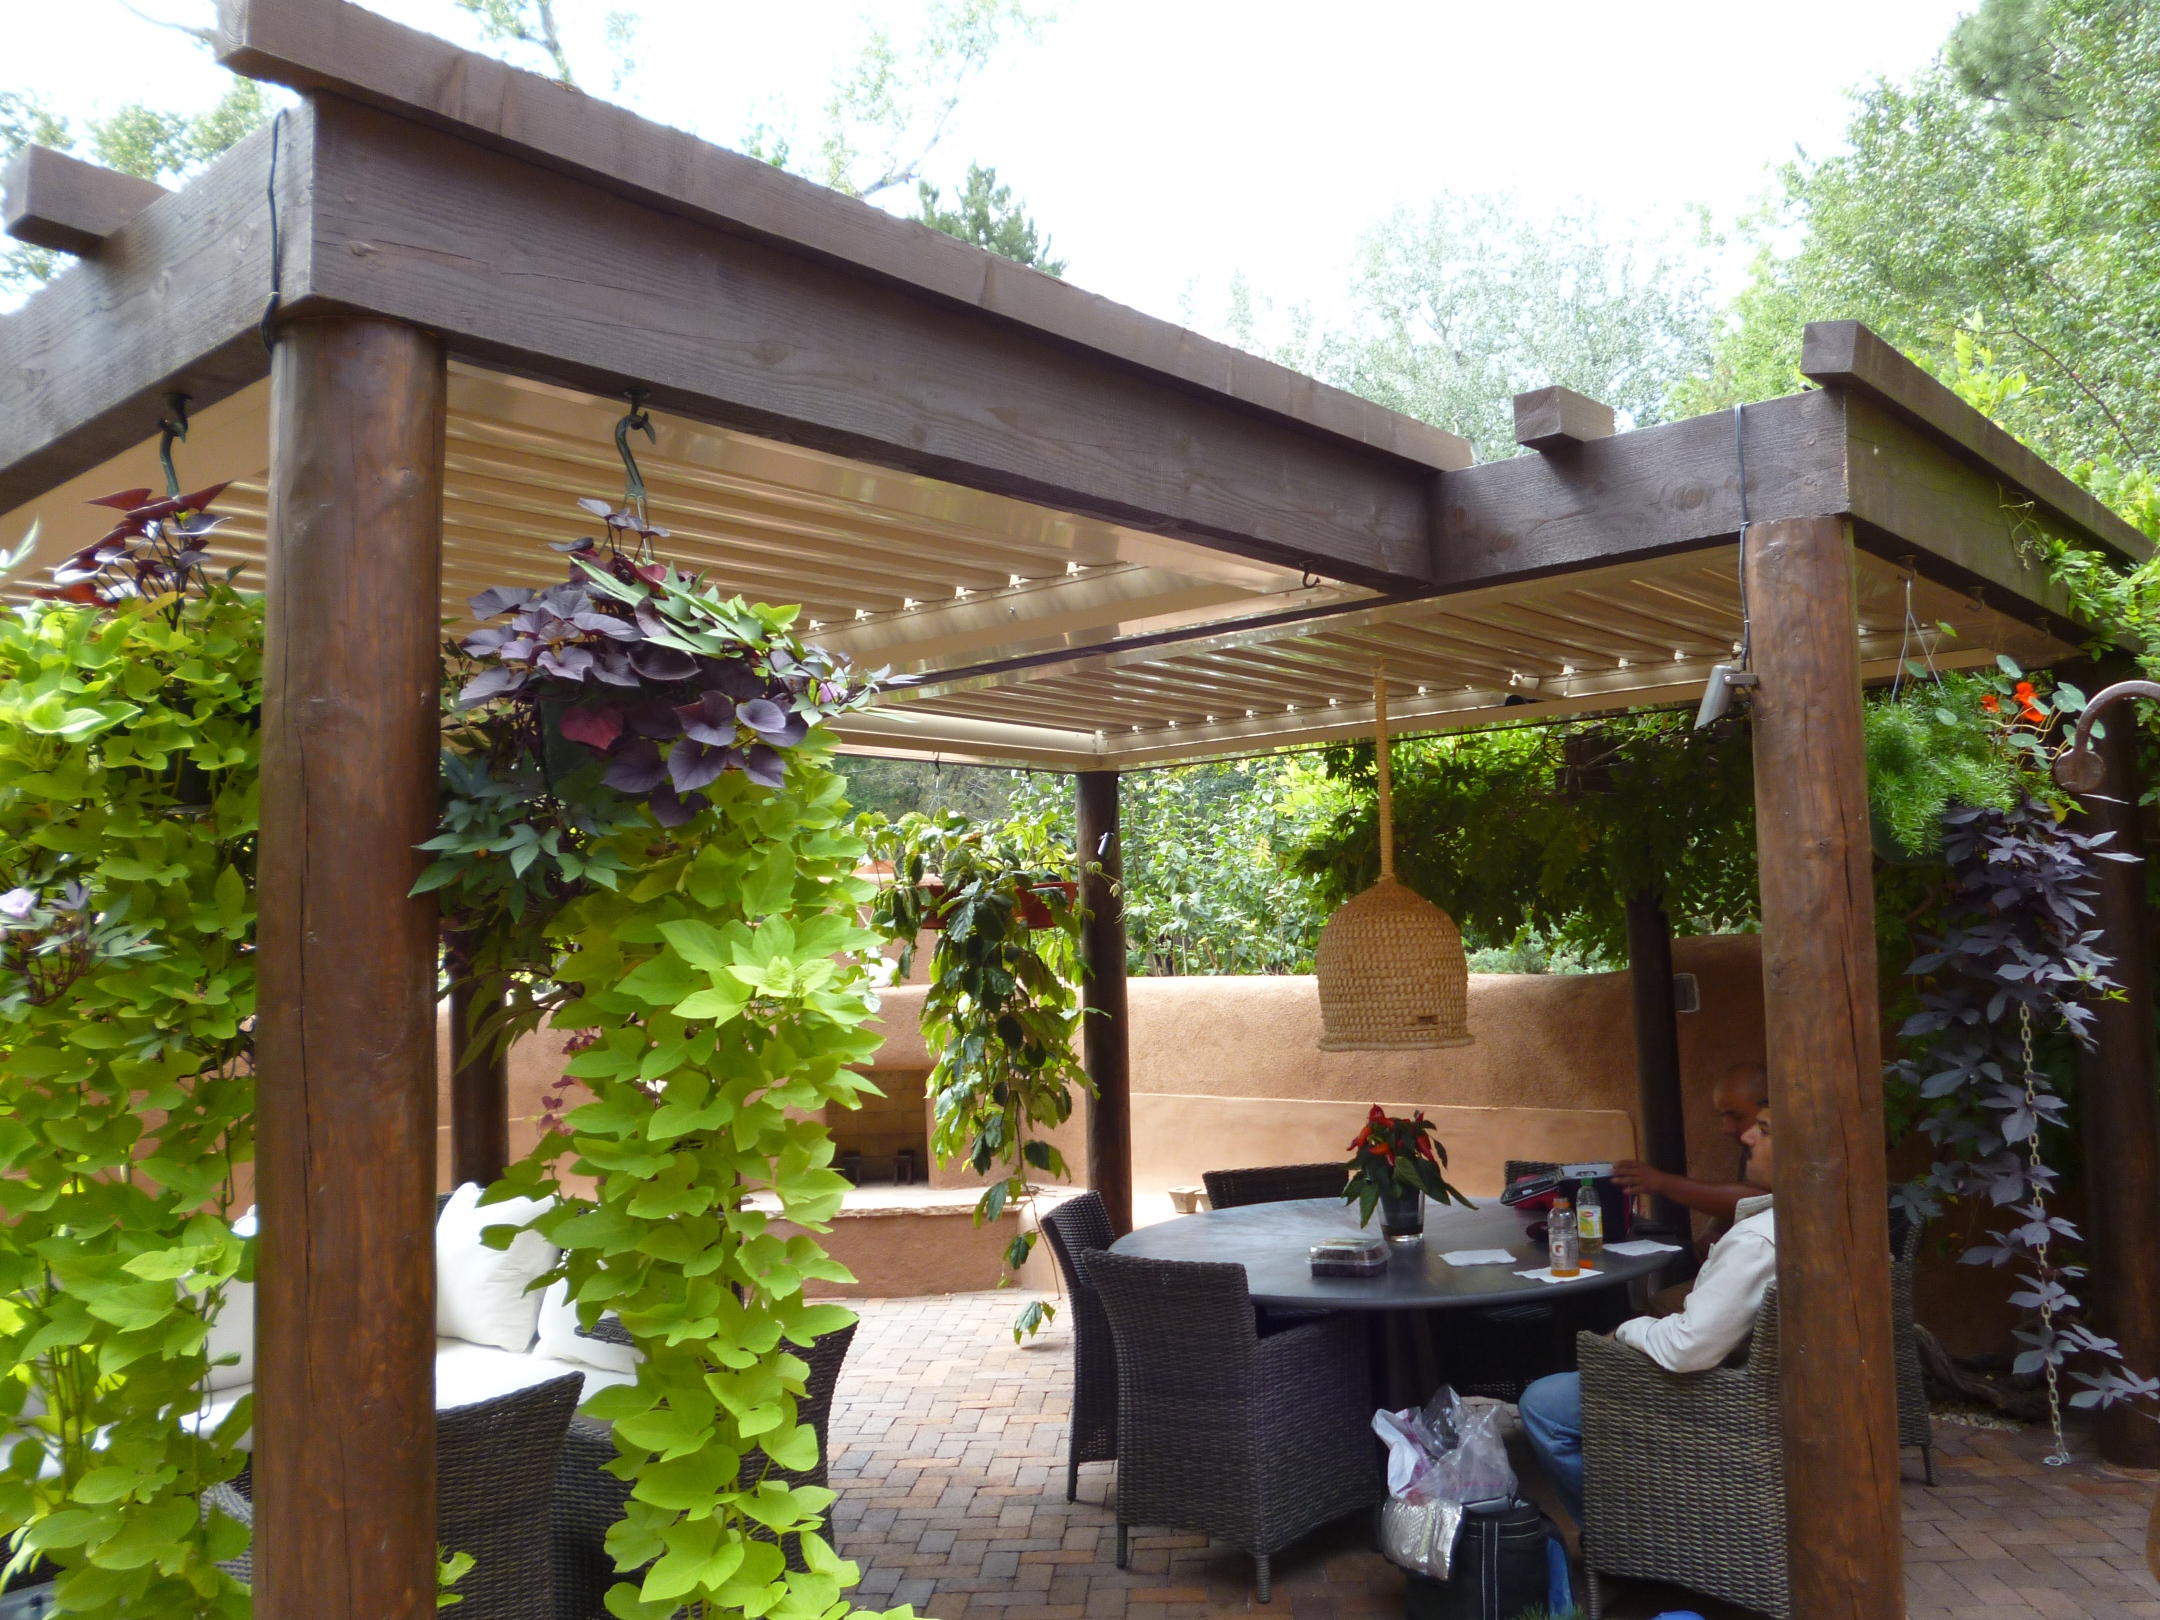 Natural Wooden Patio Covers - HomesFeed on Backyard Patio Cover Ideas  id=18881